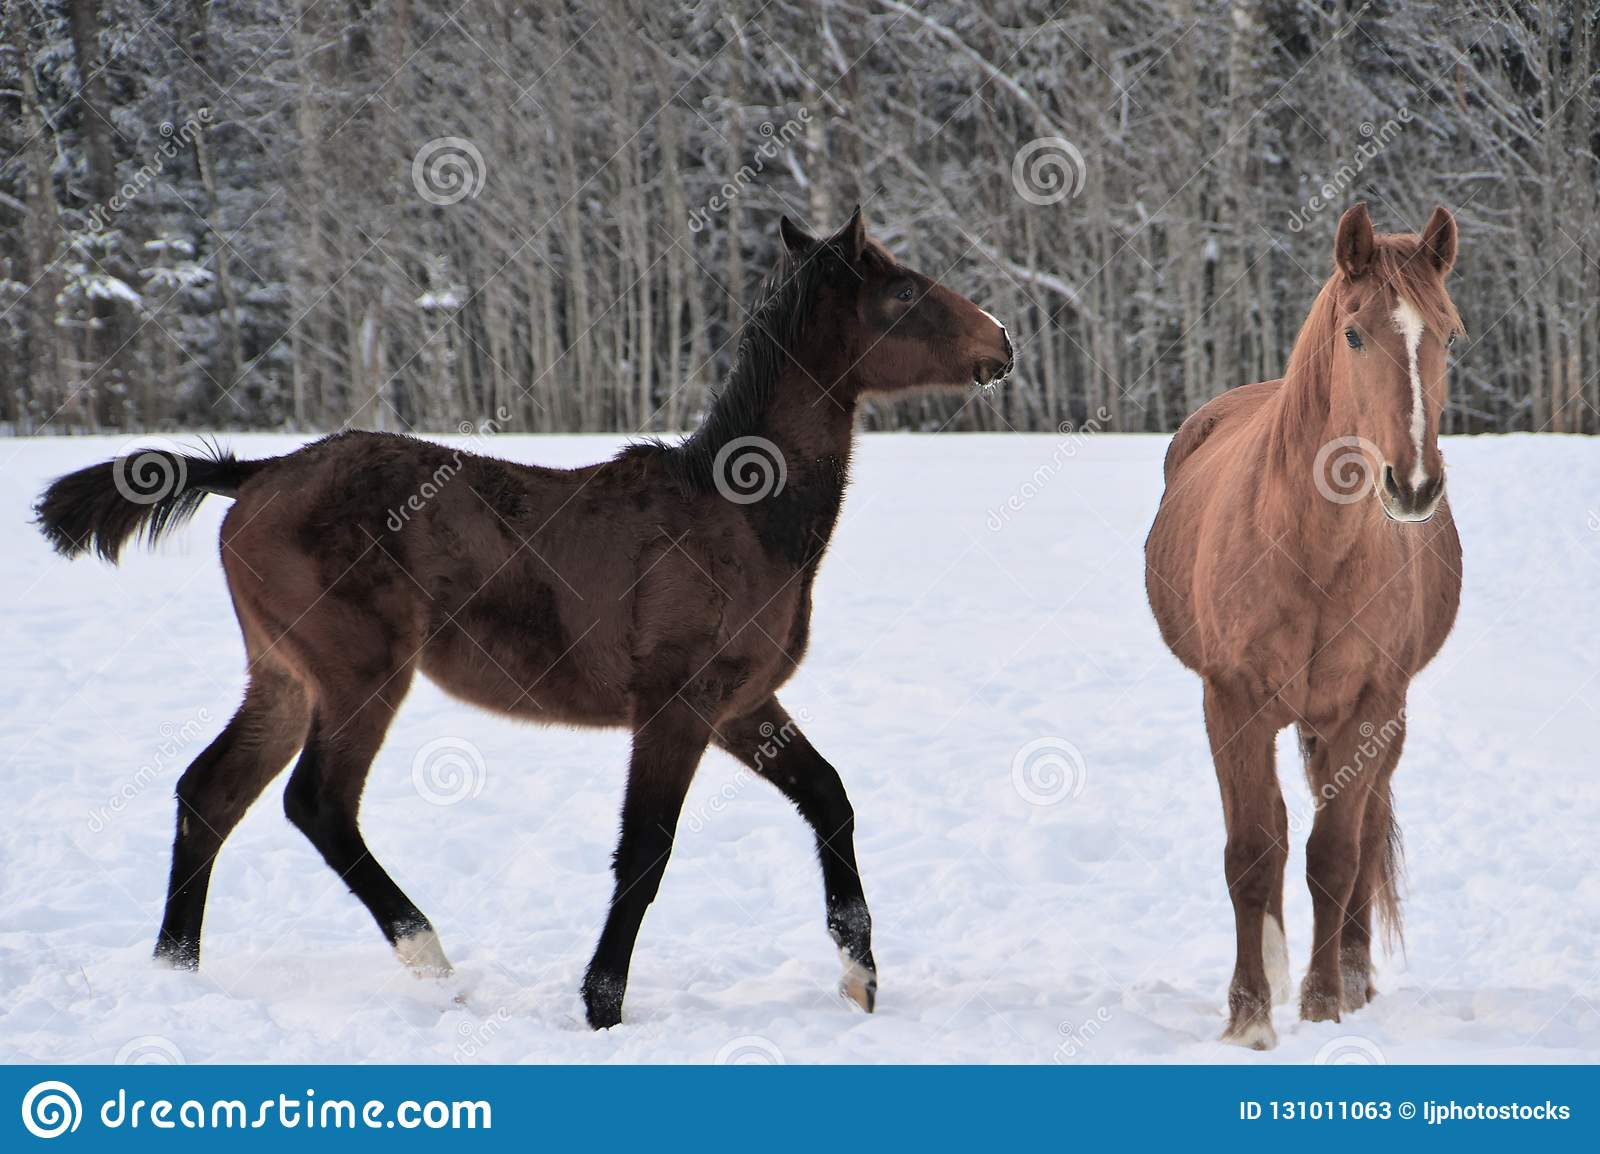 Two Horses Wearing Winter Coats Playing In Snow Covered Paddock Stock Image Image Of Winter Strip 131011063